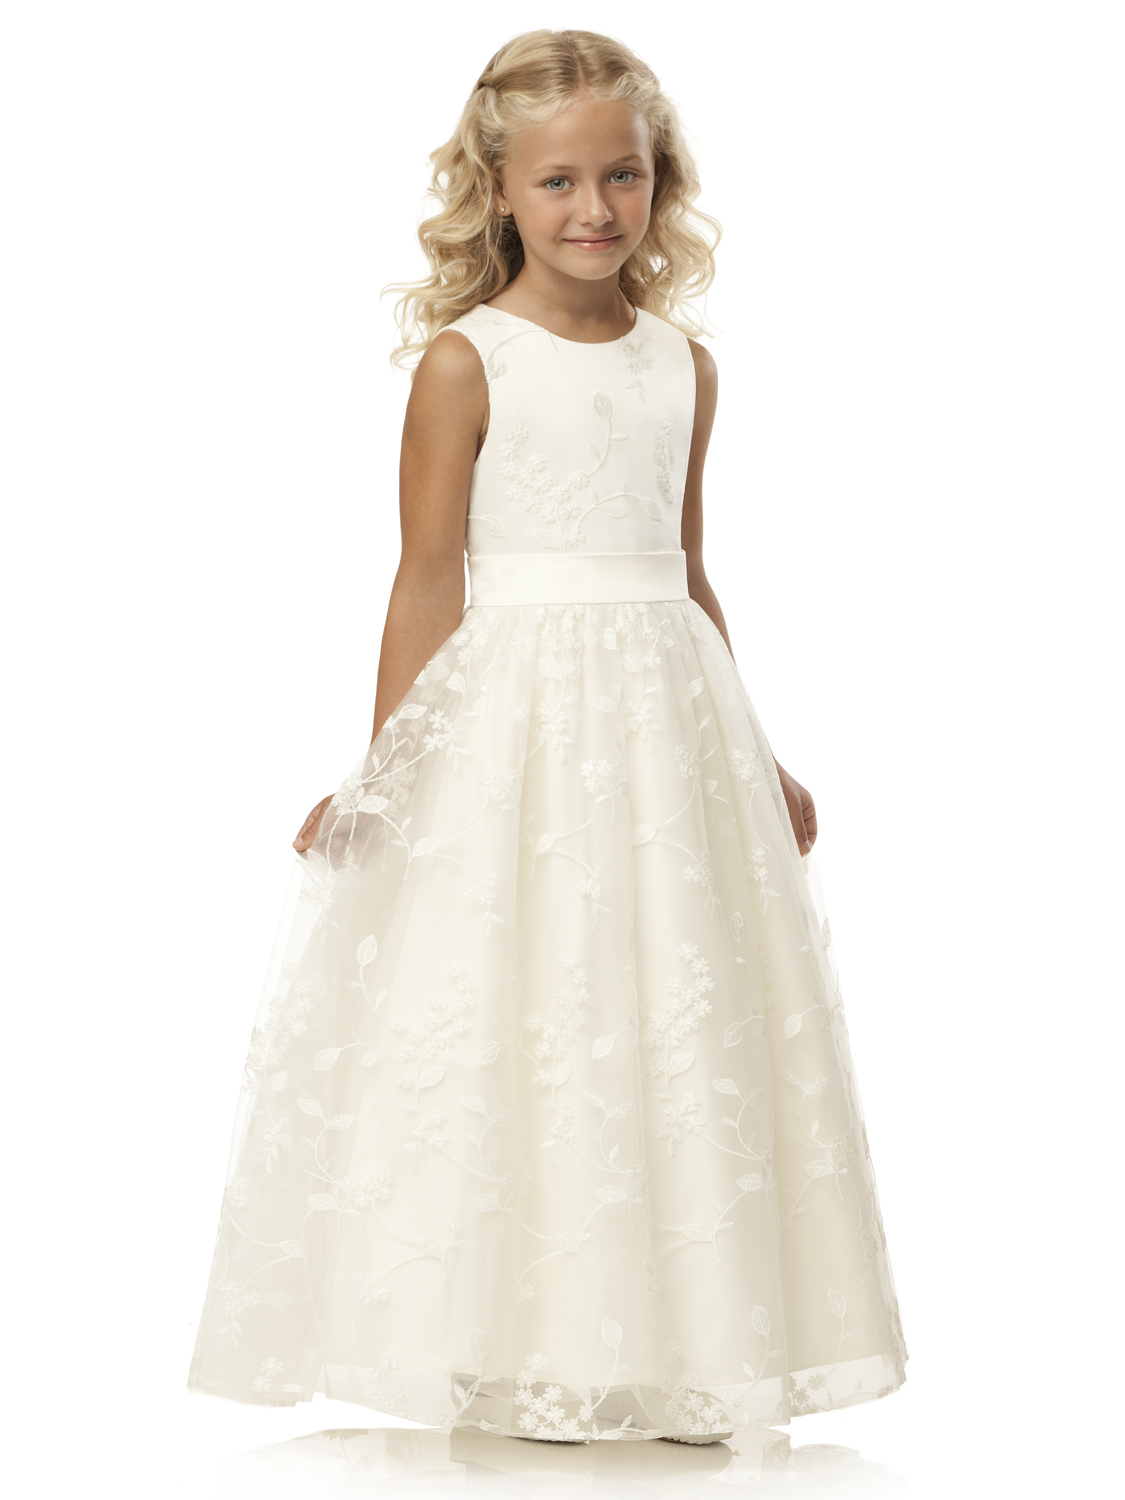 Flower Ivory girl dresses ireland pictures